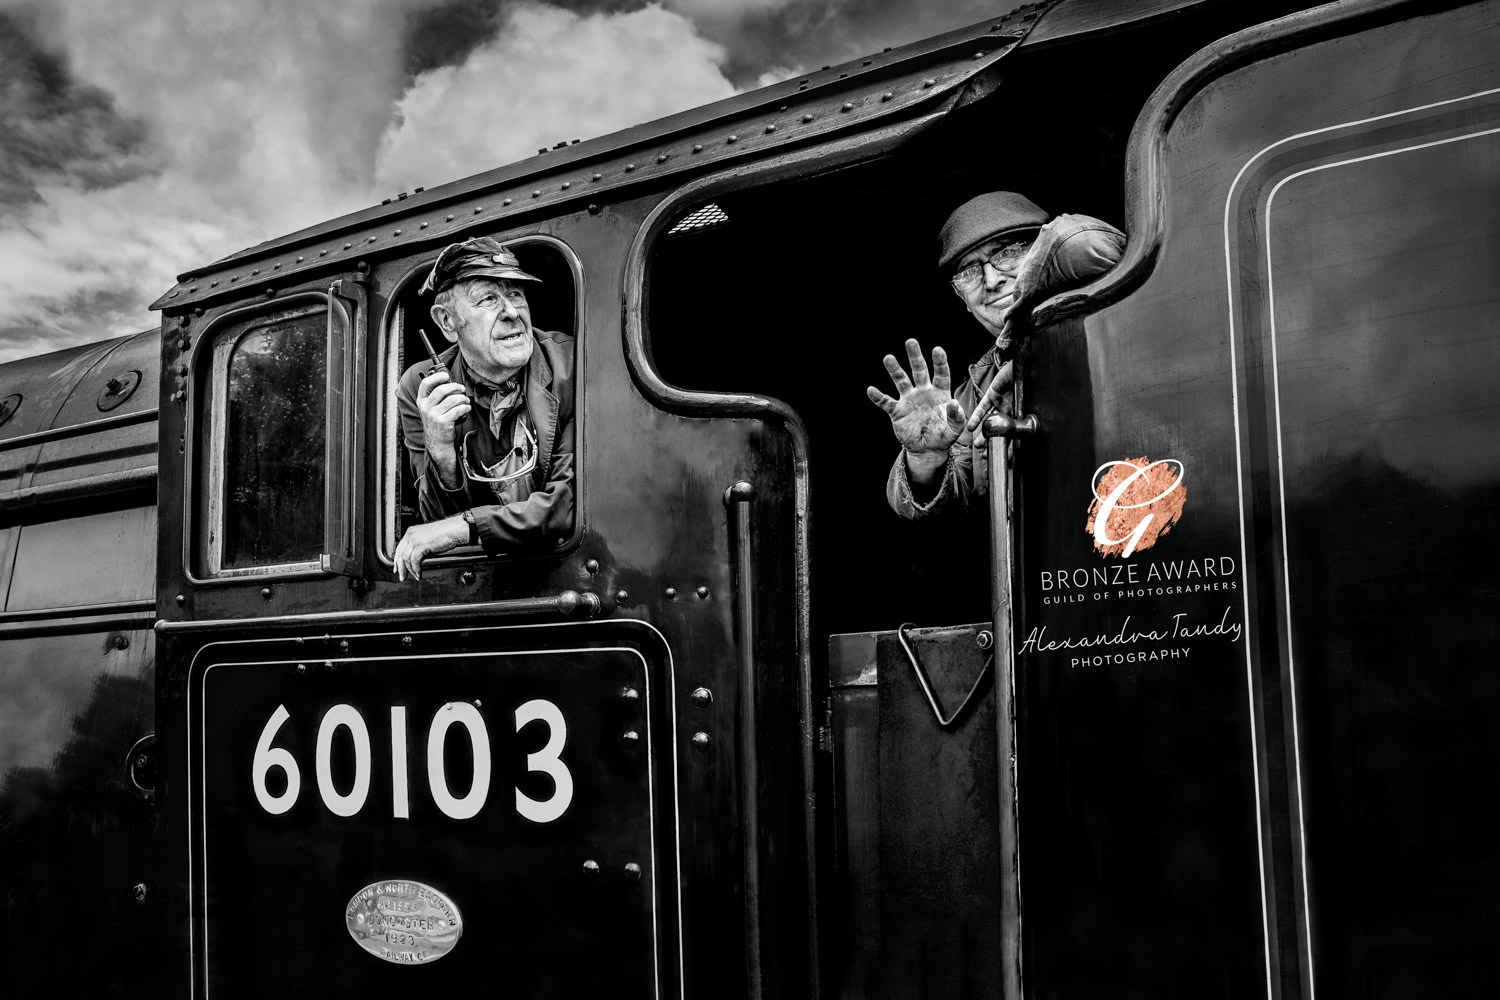 Drivers peering out of Flying Scotsman Award Winning image